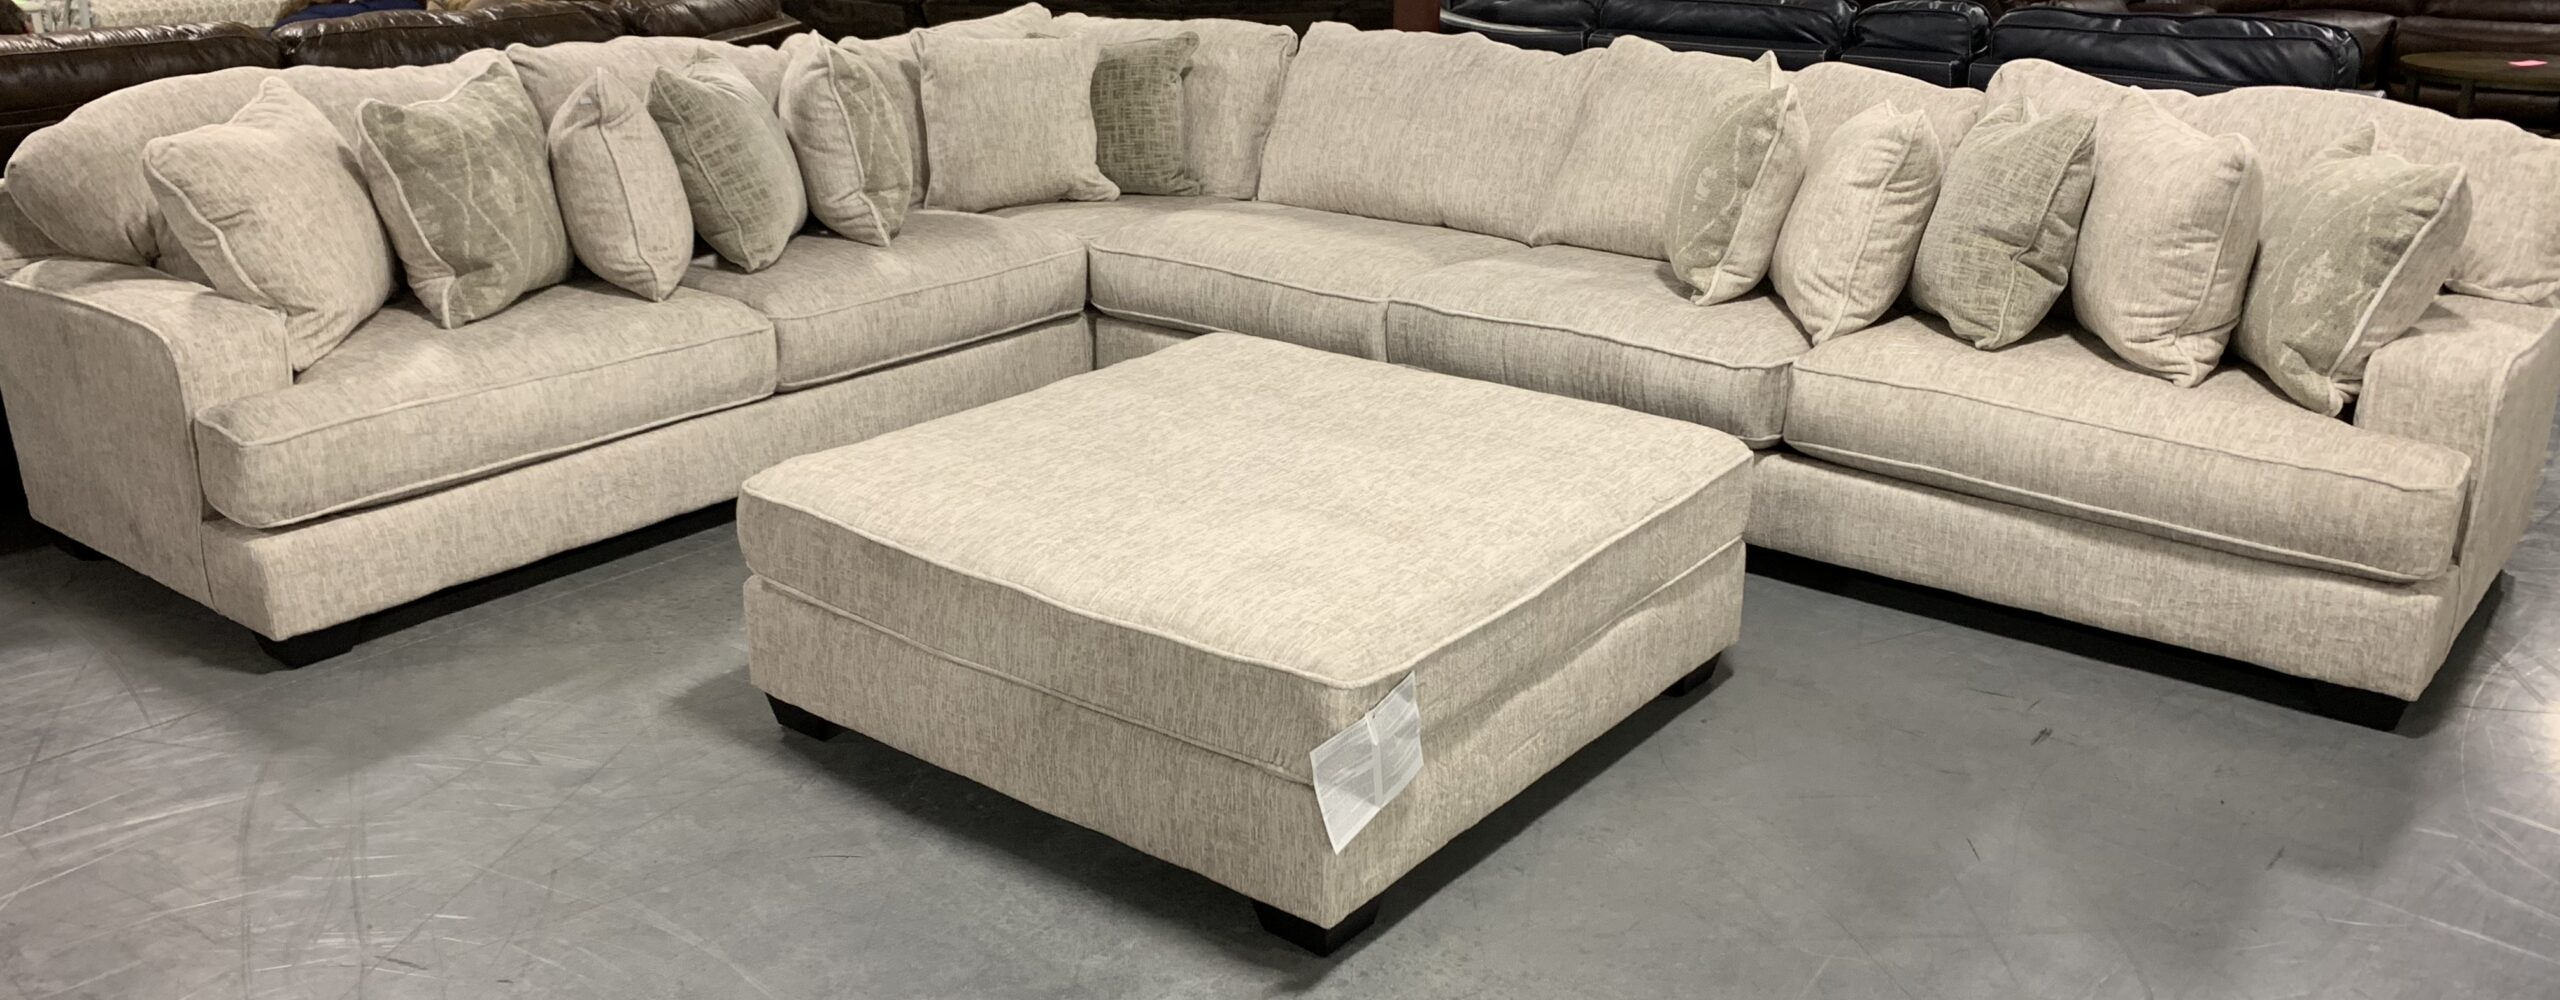 a large sectional by Ashley